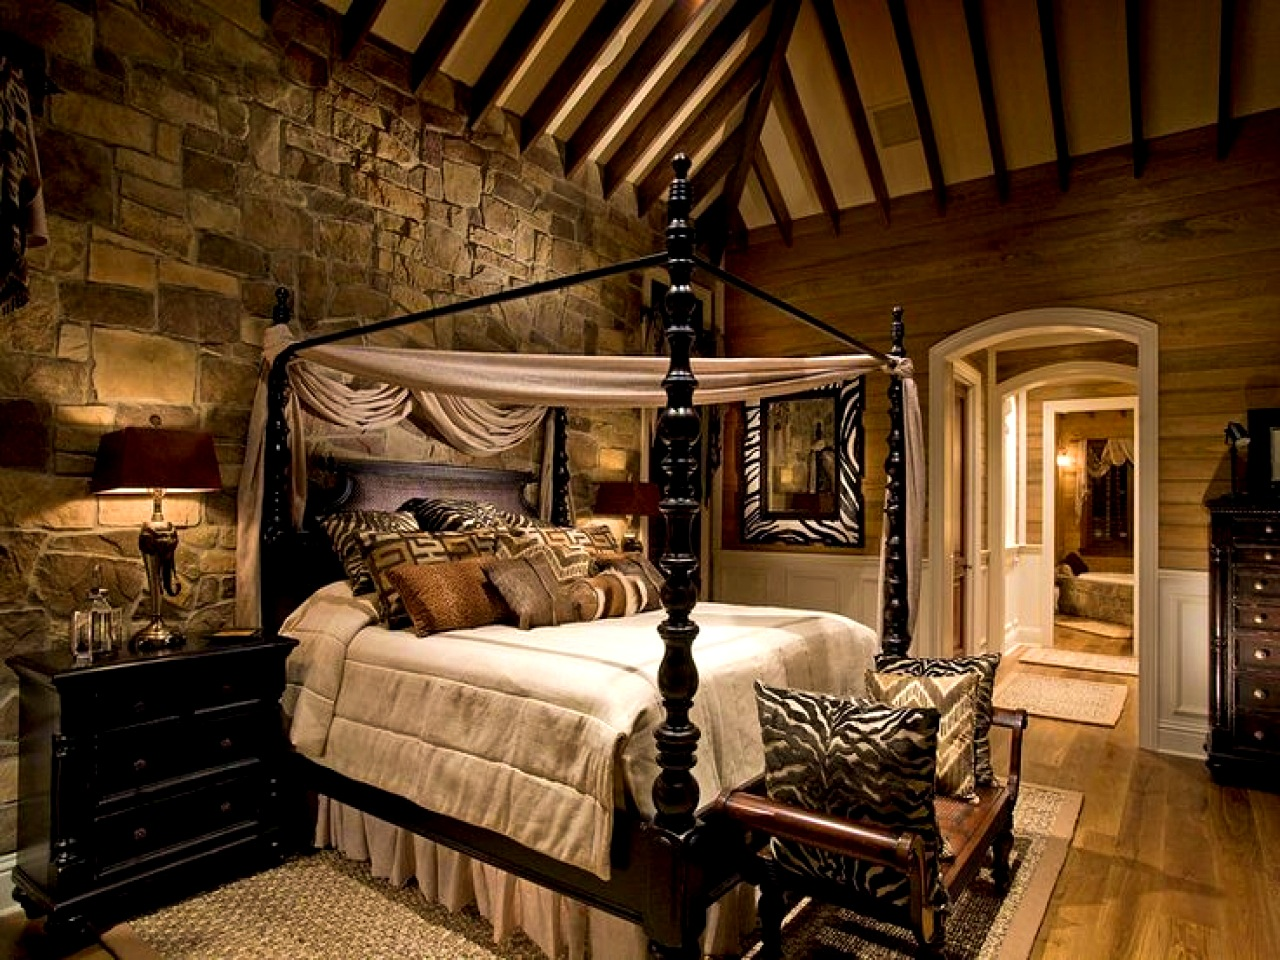 Rustic bedroom decorating ideas a guide to inspire and for Home decorating rustic ideas